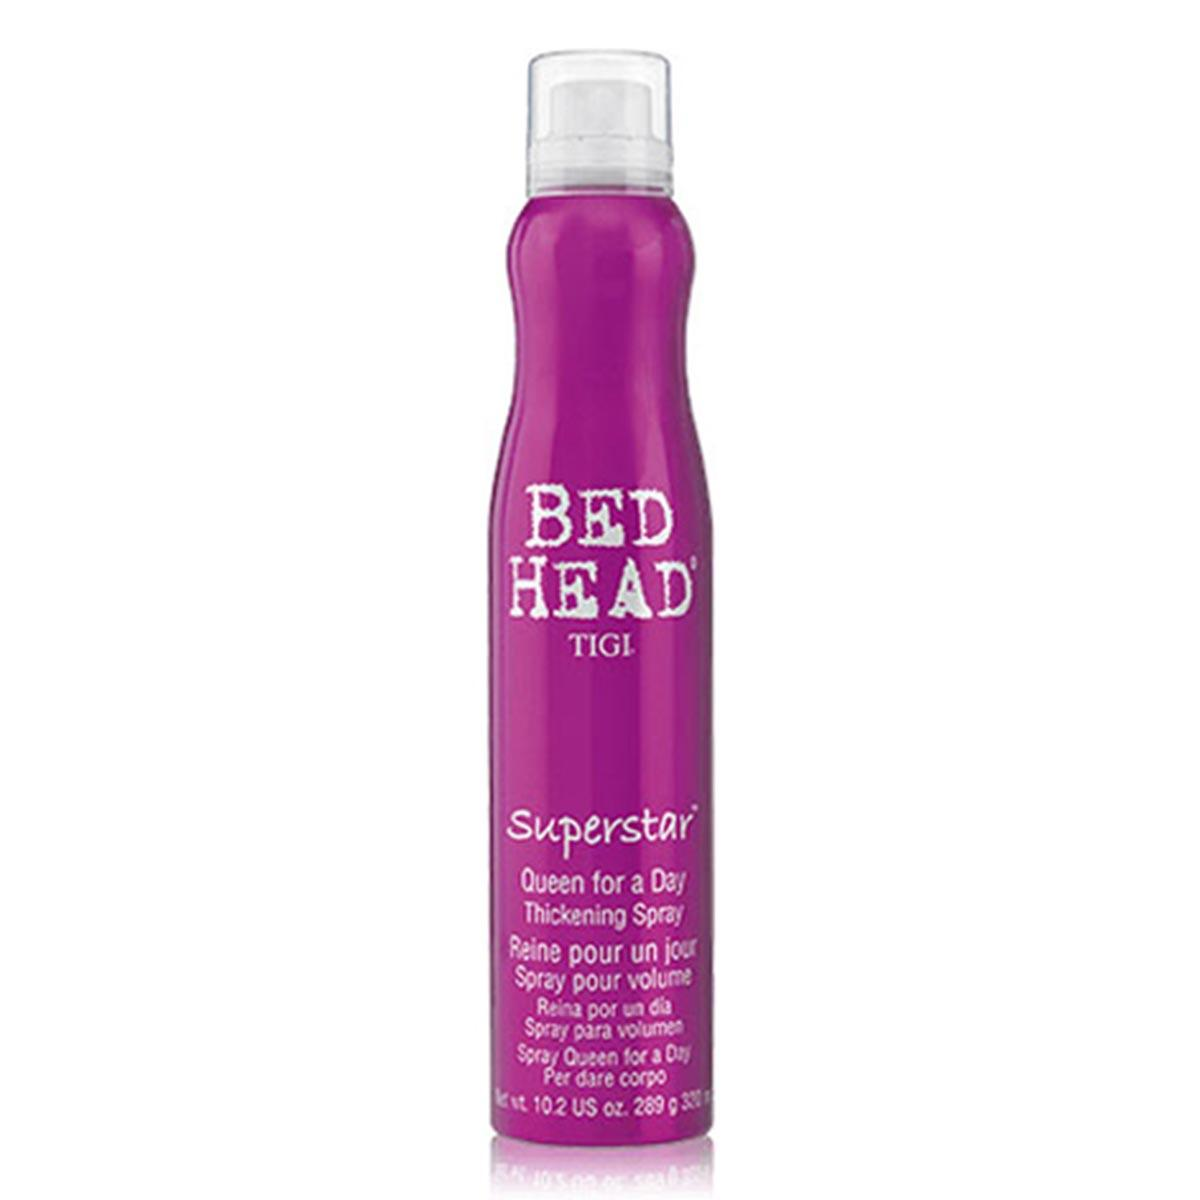 Tigi fragrances Bed Head Superstar Queen For A Day 320ml